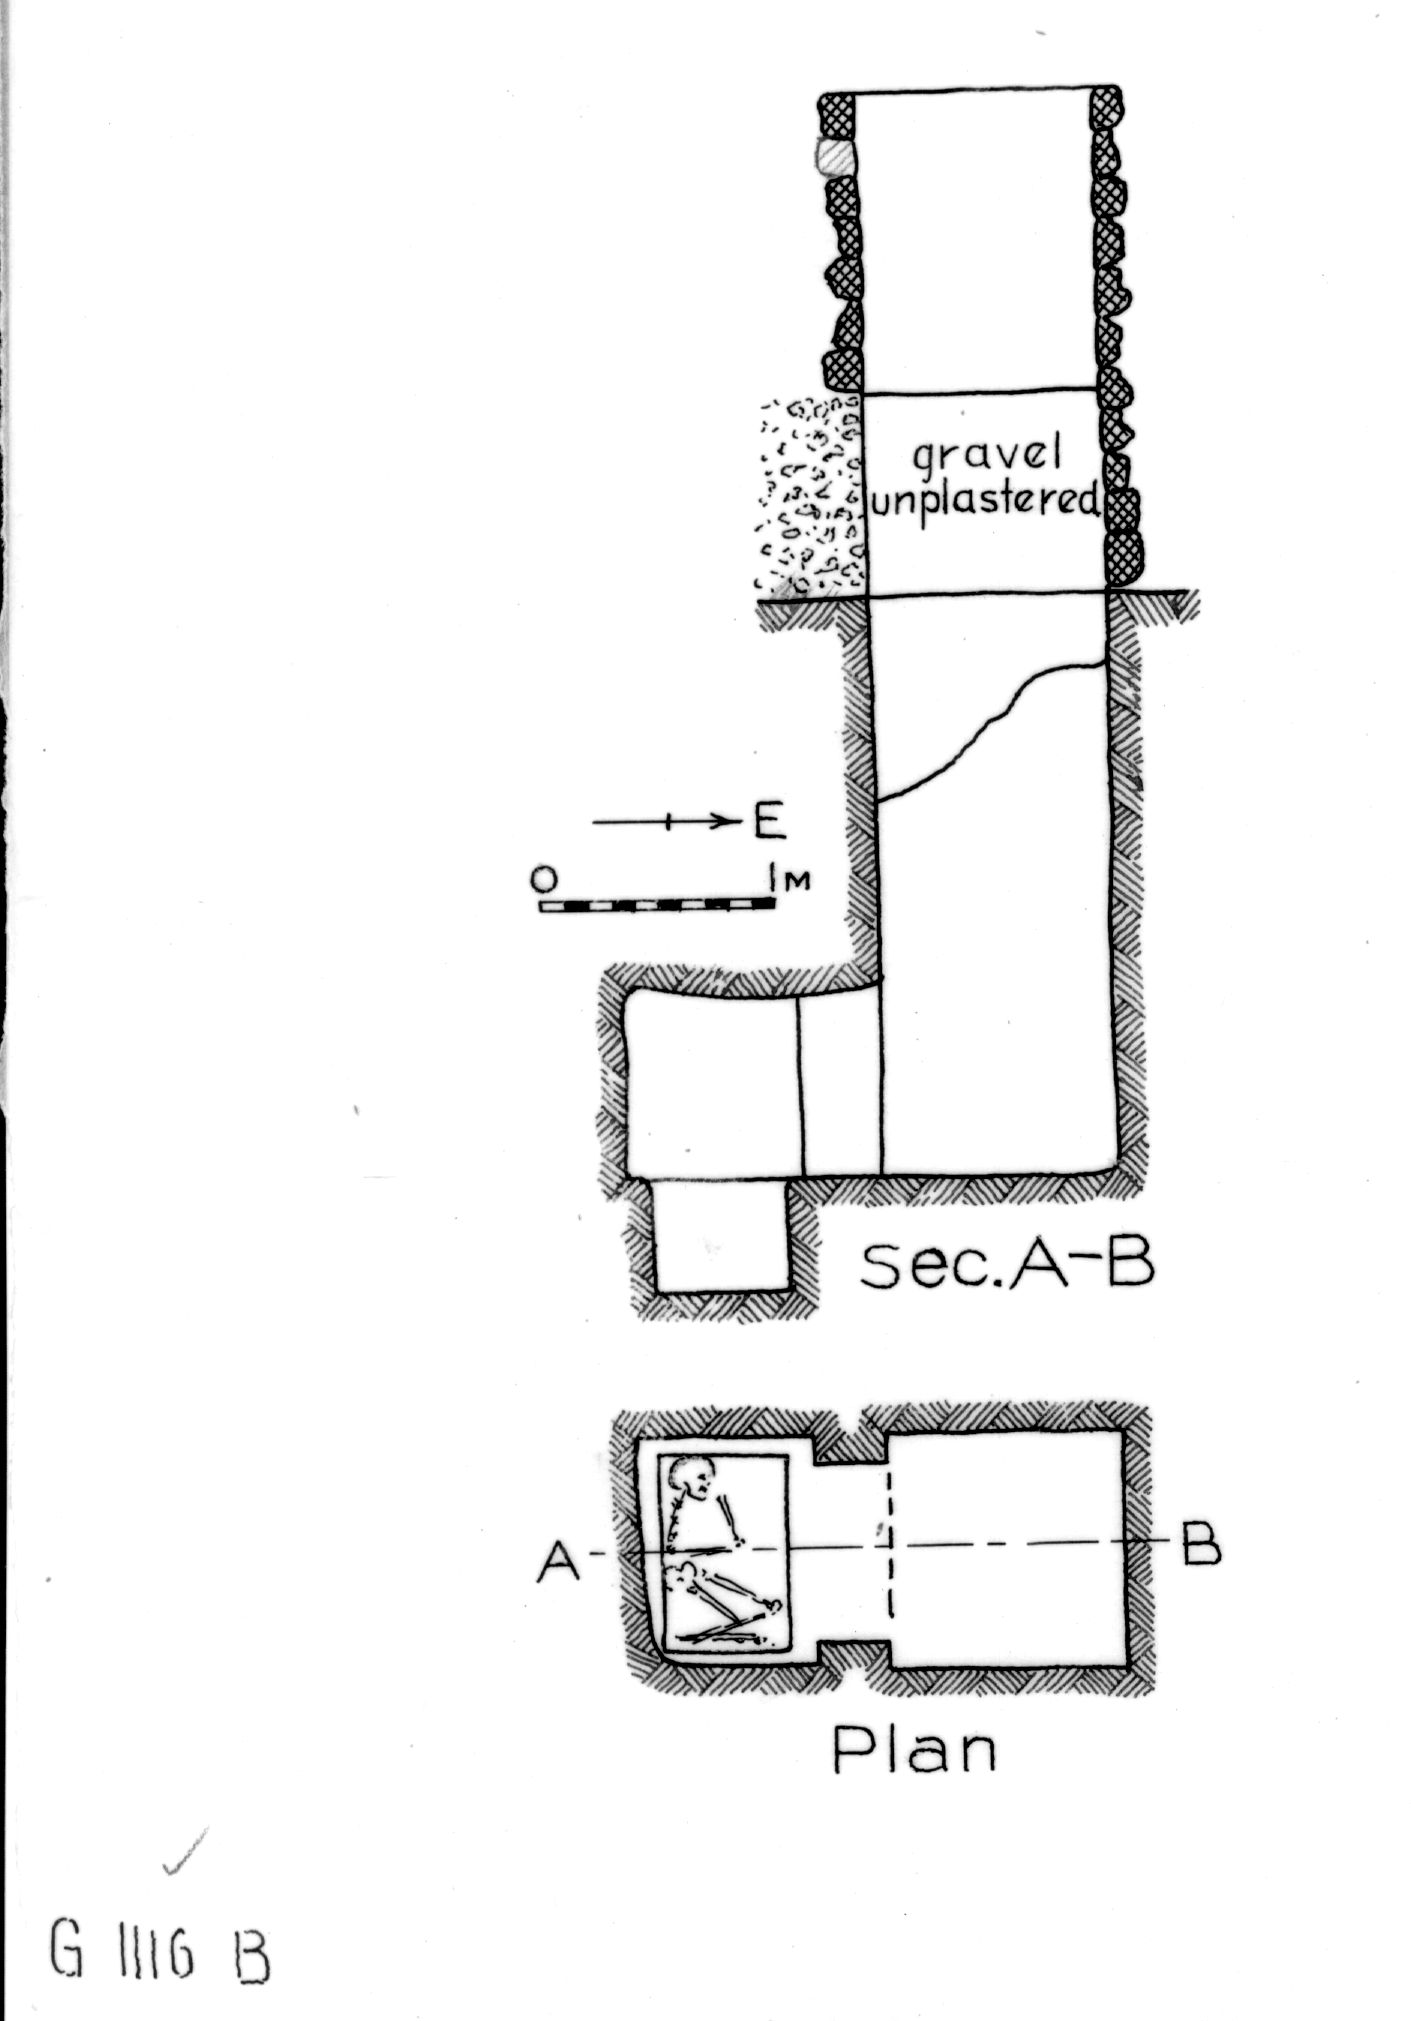 Maps and plans: G 1116, Shaft B